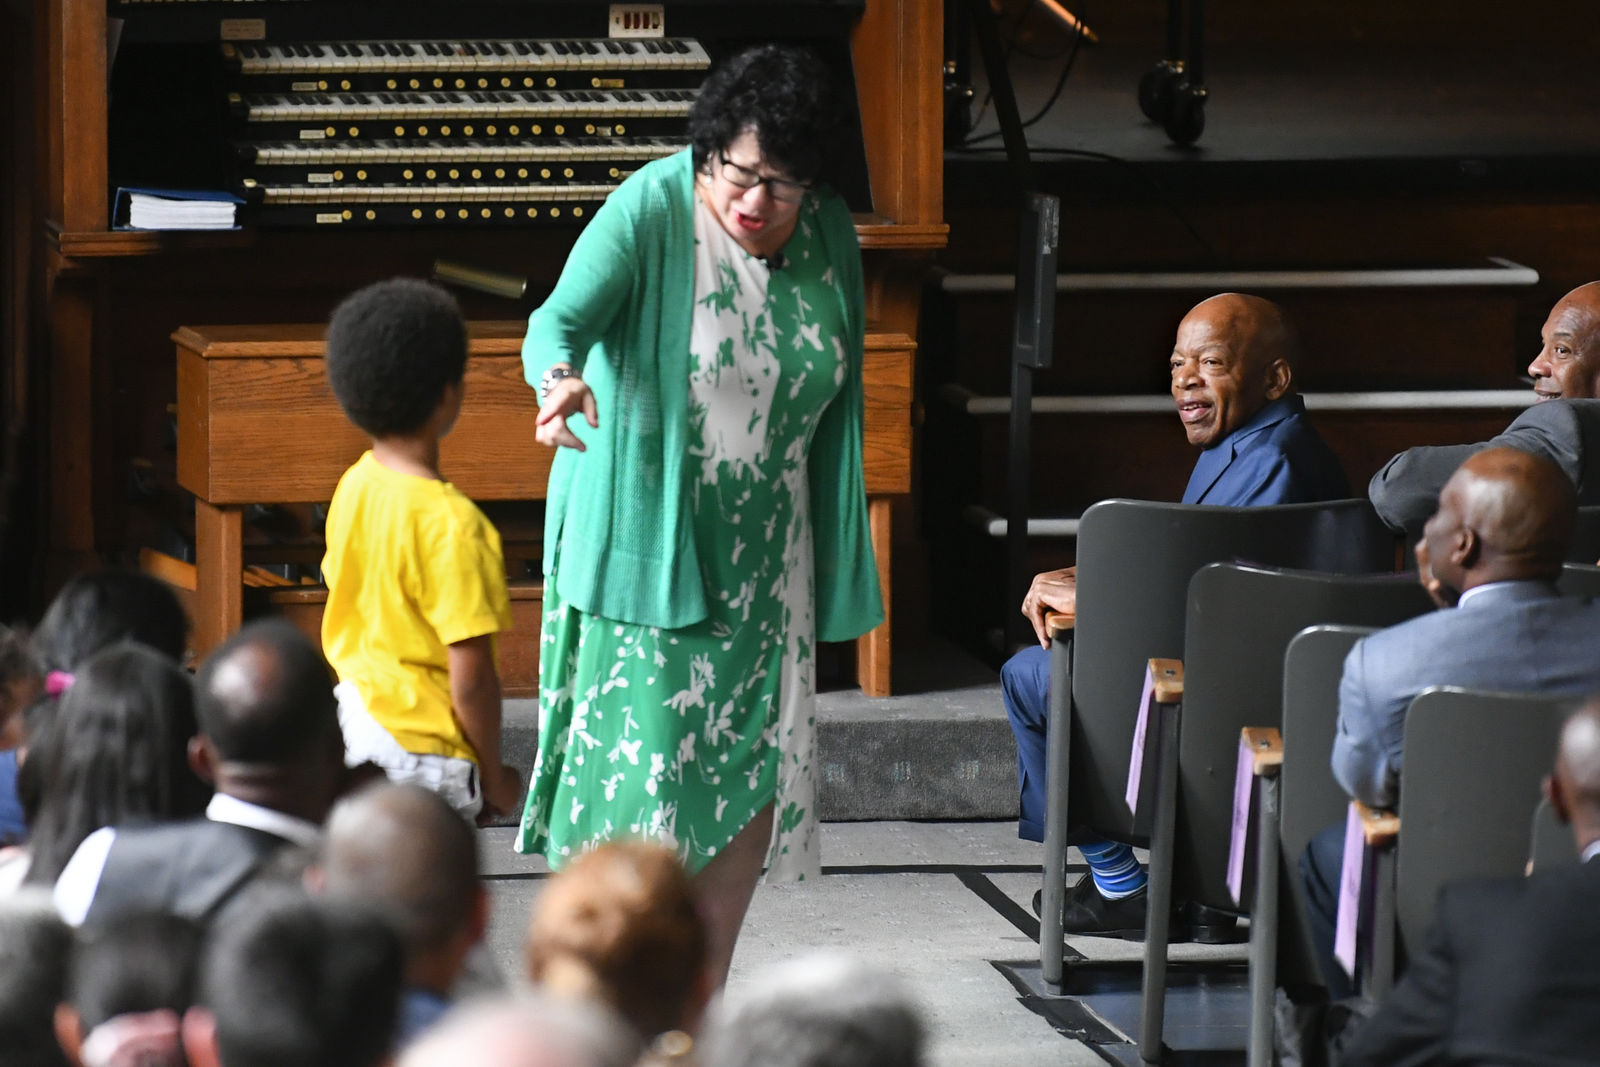 "U.S. Rep. John Lewis, D-Ga., right, watches as U.S. Supreme Court Justice Sonia Sotomayor, center, responds to a question from a child during an event promoting her new children's book ""Just Ask!"" in Decatur, Ga., Sunday, Sept. 1, 2019. (AP Photo/John Amis)"